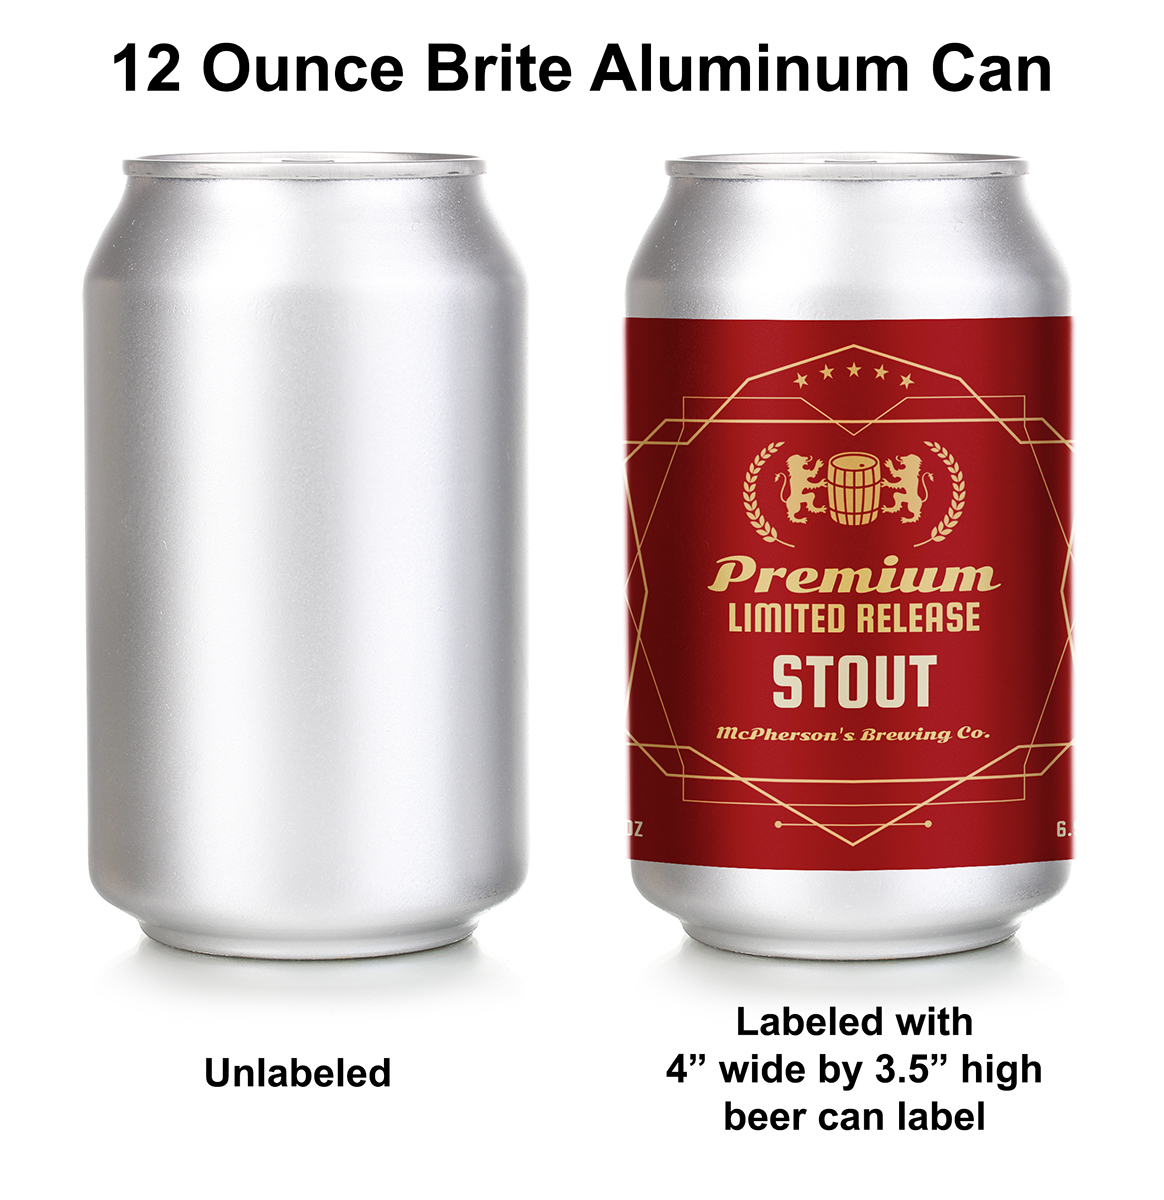 Custom beer can labels for 12 ounce cans.